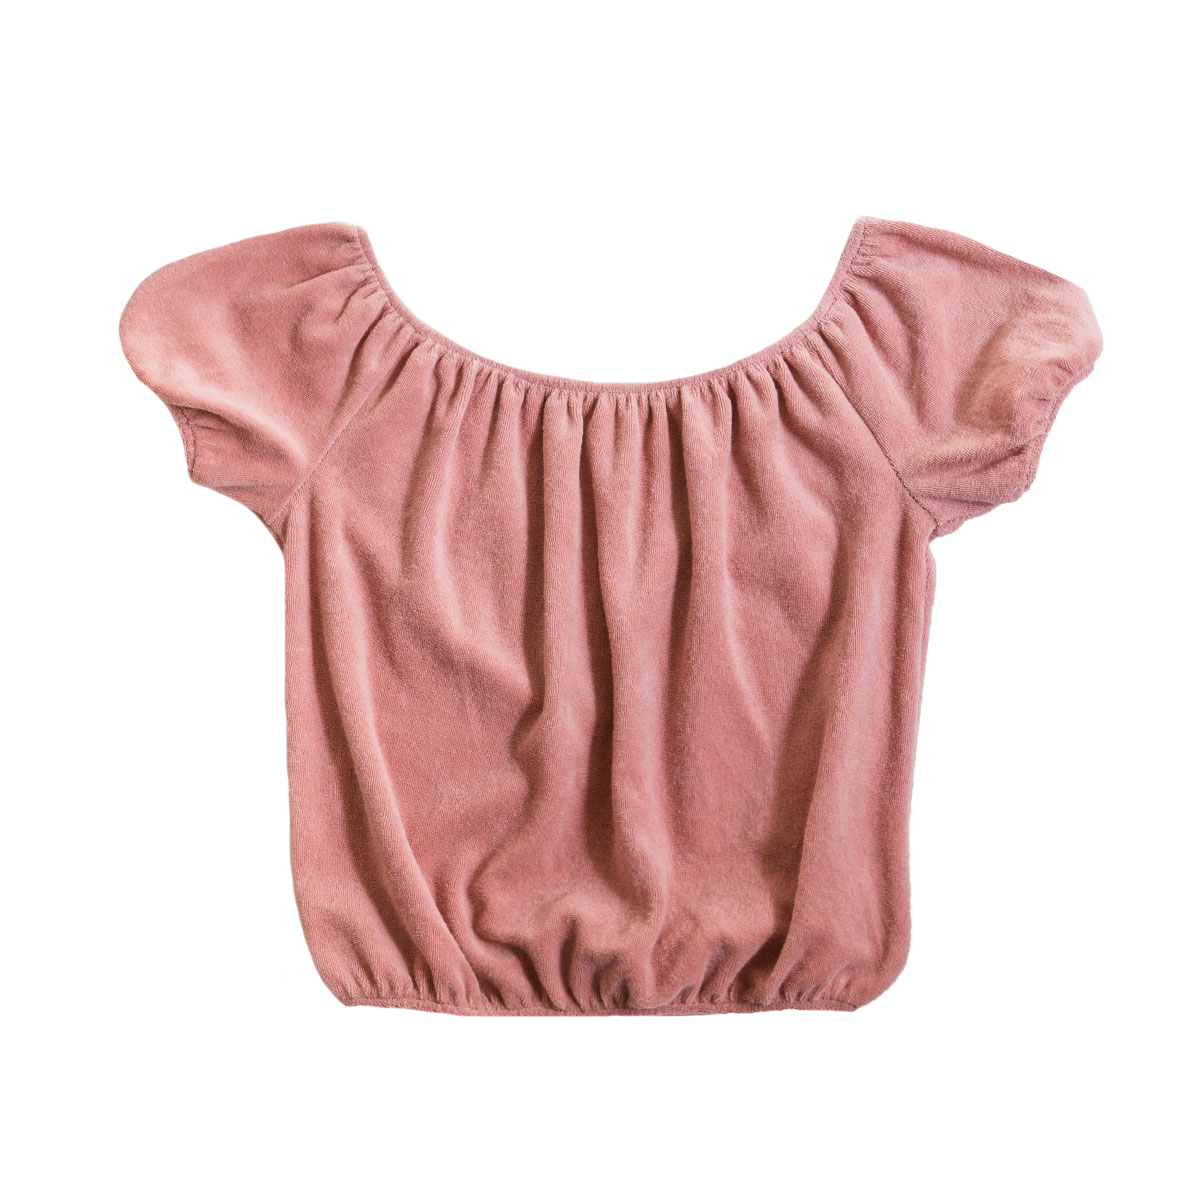 We Are Kids Rita Top in Blush